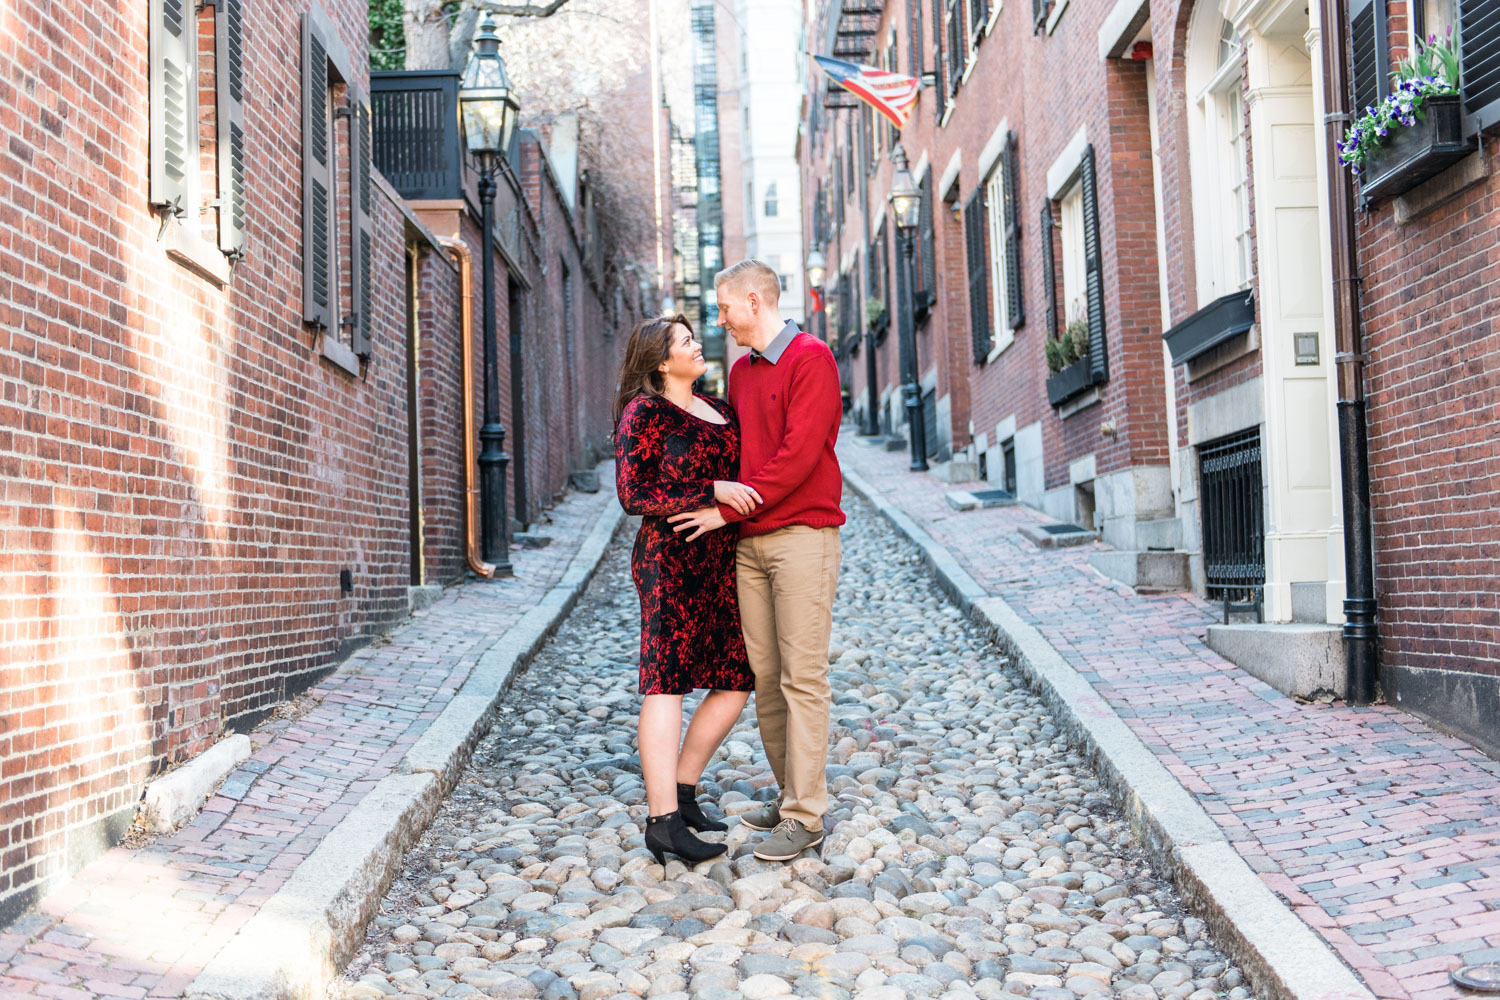 Andrea + Scott | Dog Lovers Beacon Hill Formal Spring Sunrise Creative Organic Romantic Engagement Session | Boston and New England Engagement Photography | Lorna Stell Photo